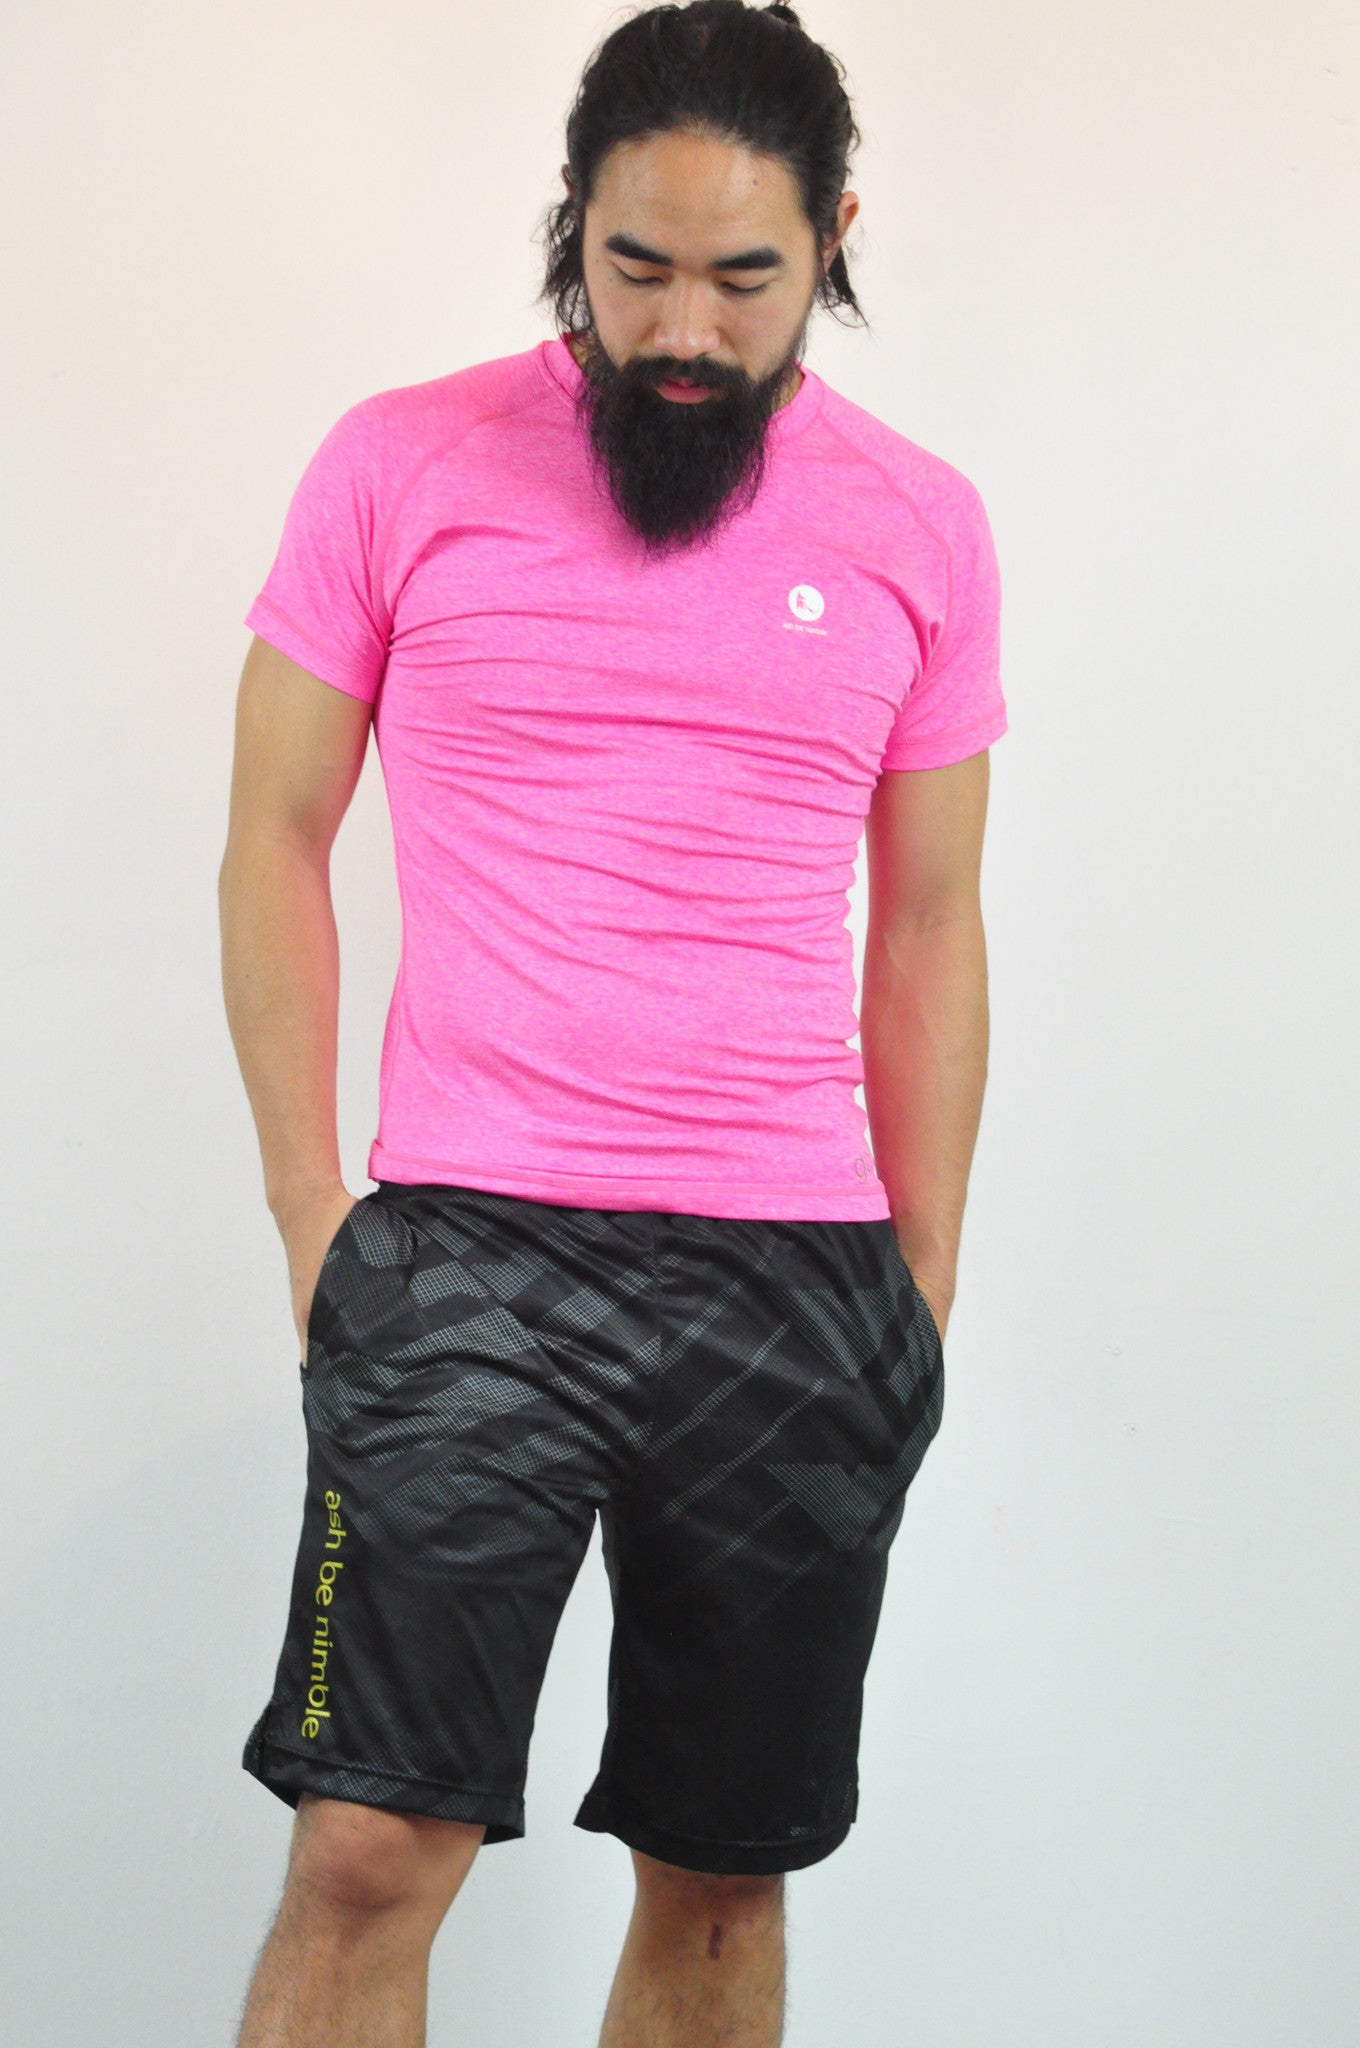 athletic nimble tee in pink